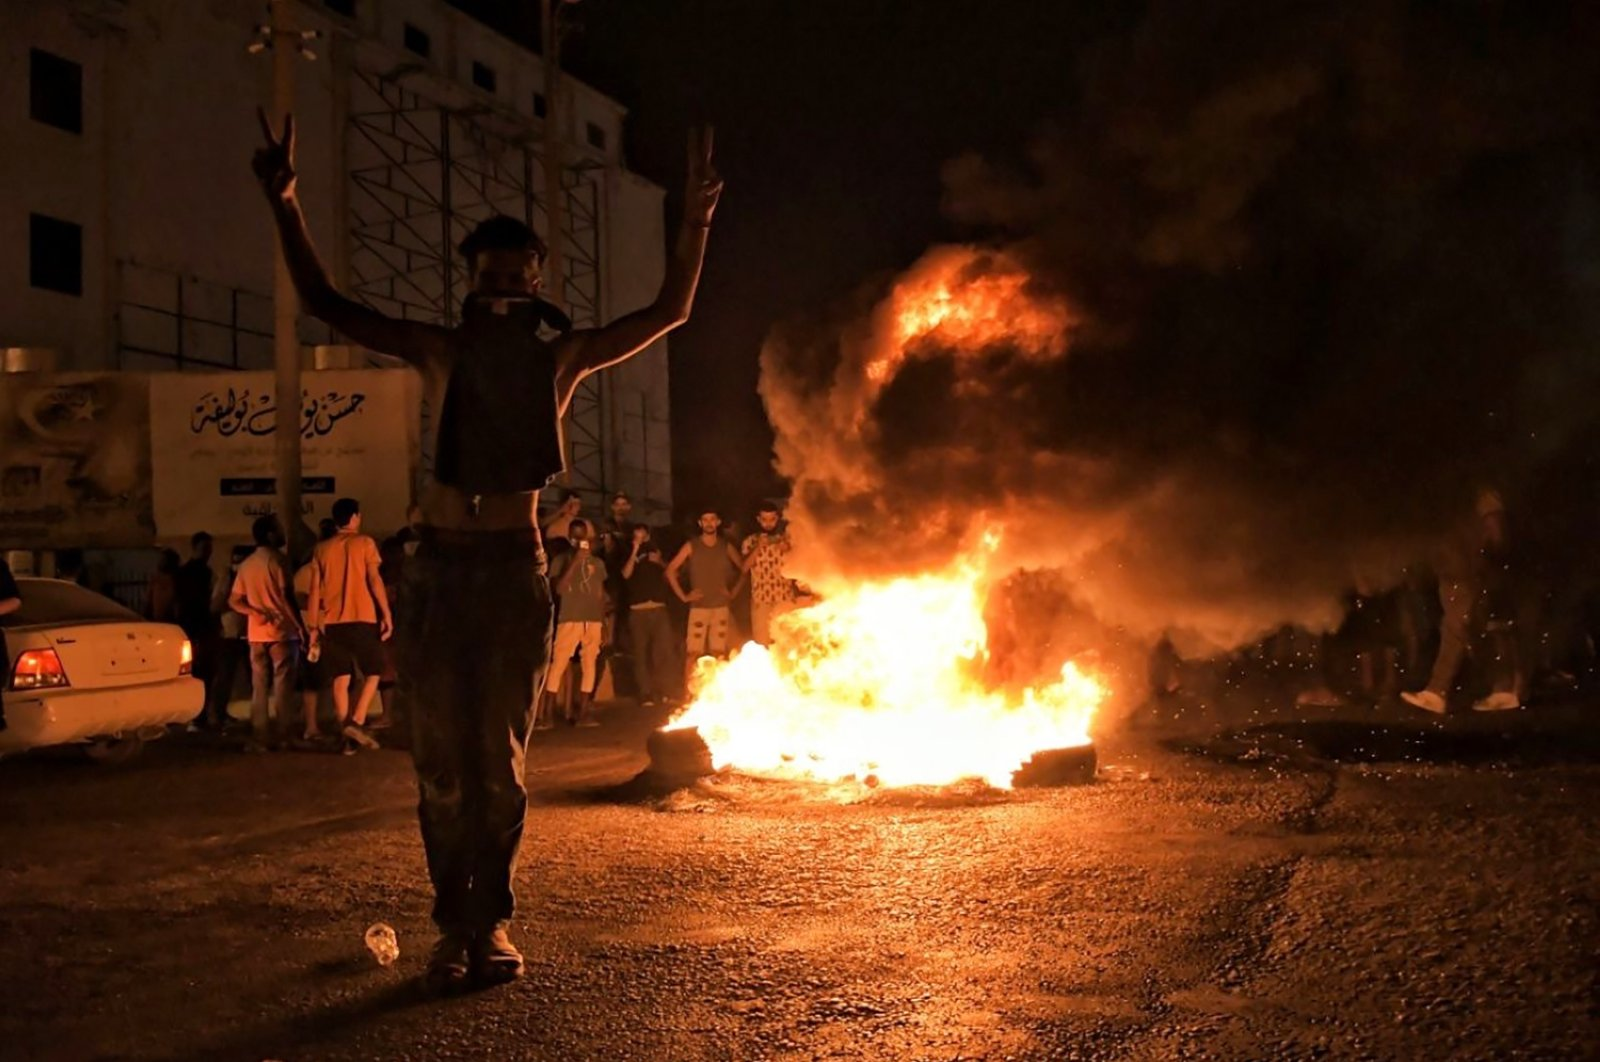 Protesters angry over the area's crippling electricity shortages set fire to tires on Thursday, Sept. 10, 2020 in Benghazi, Libya. (AP Photo)